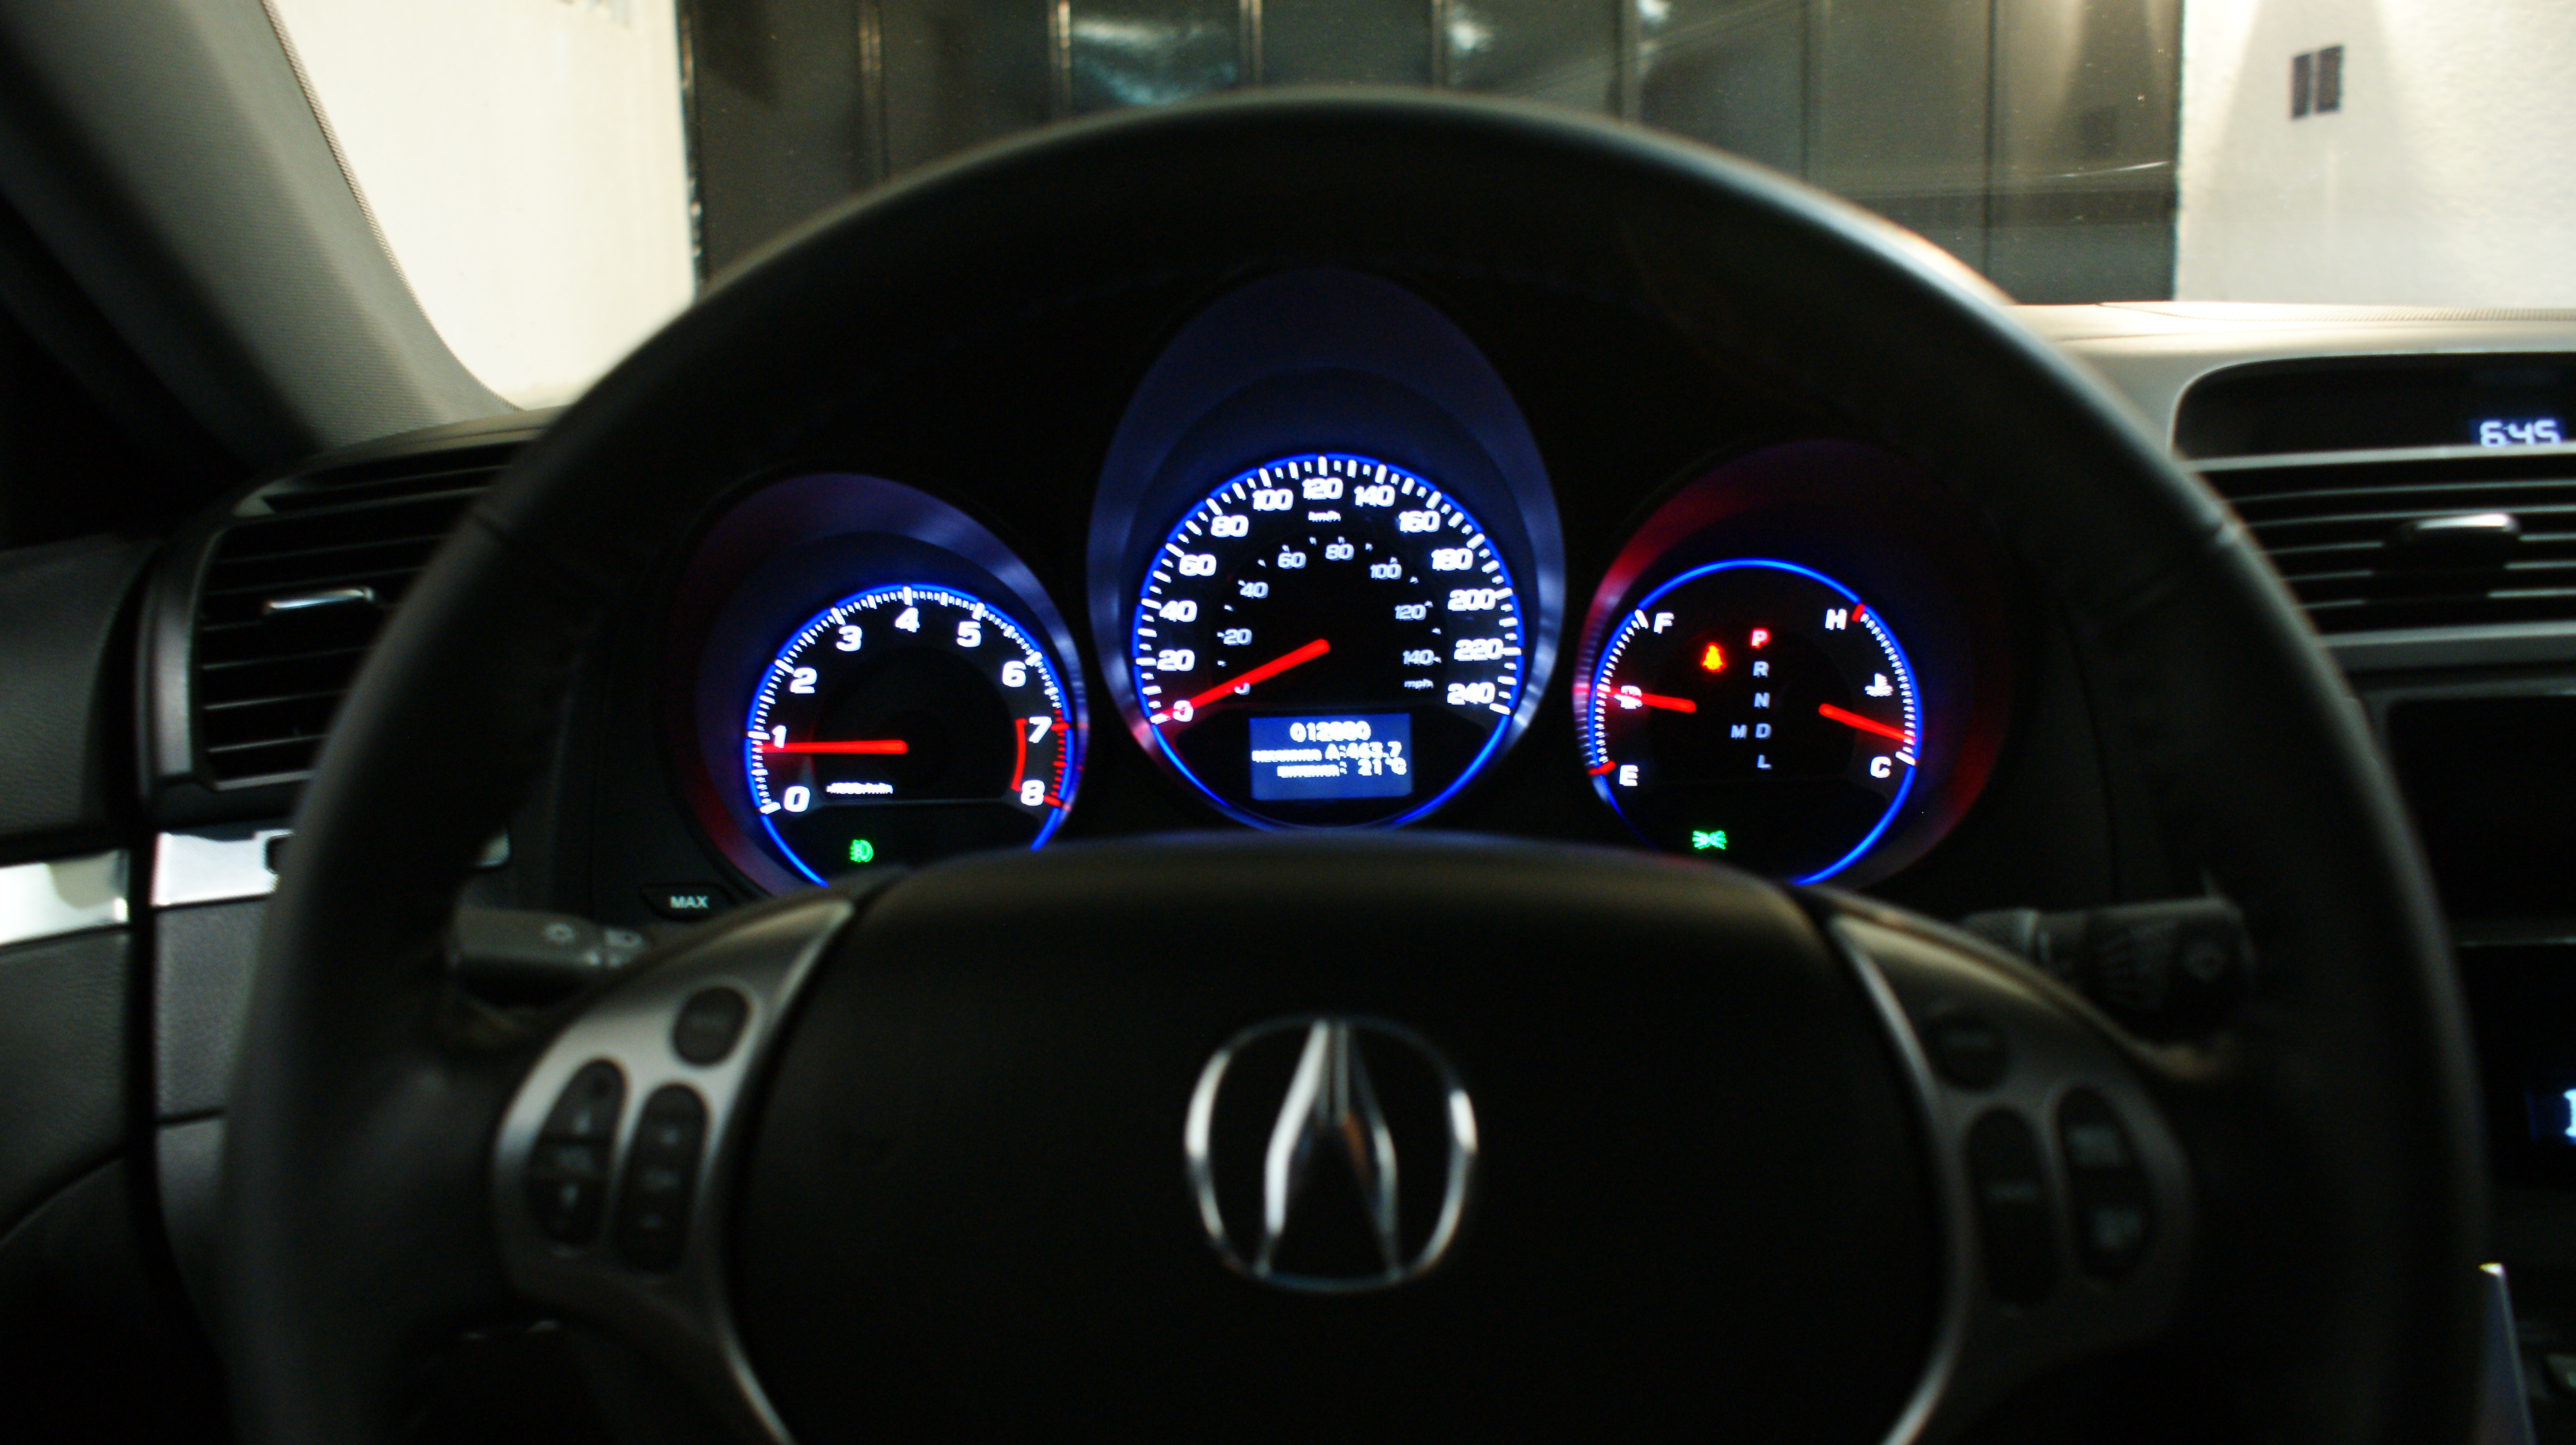 2008 Acura Tl Interior Pictures Www Proteckmachinery Com